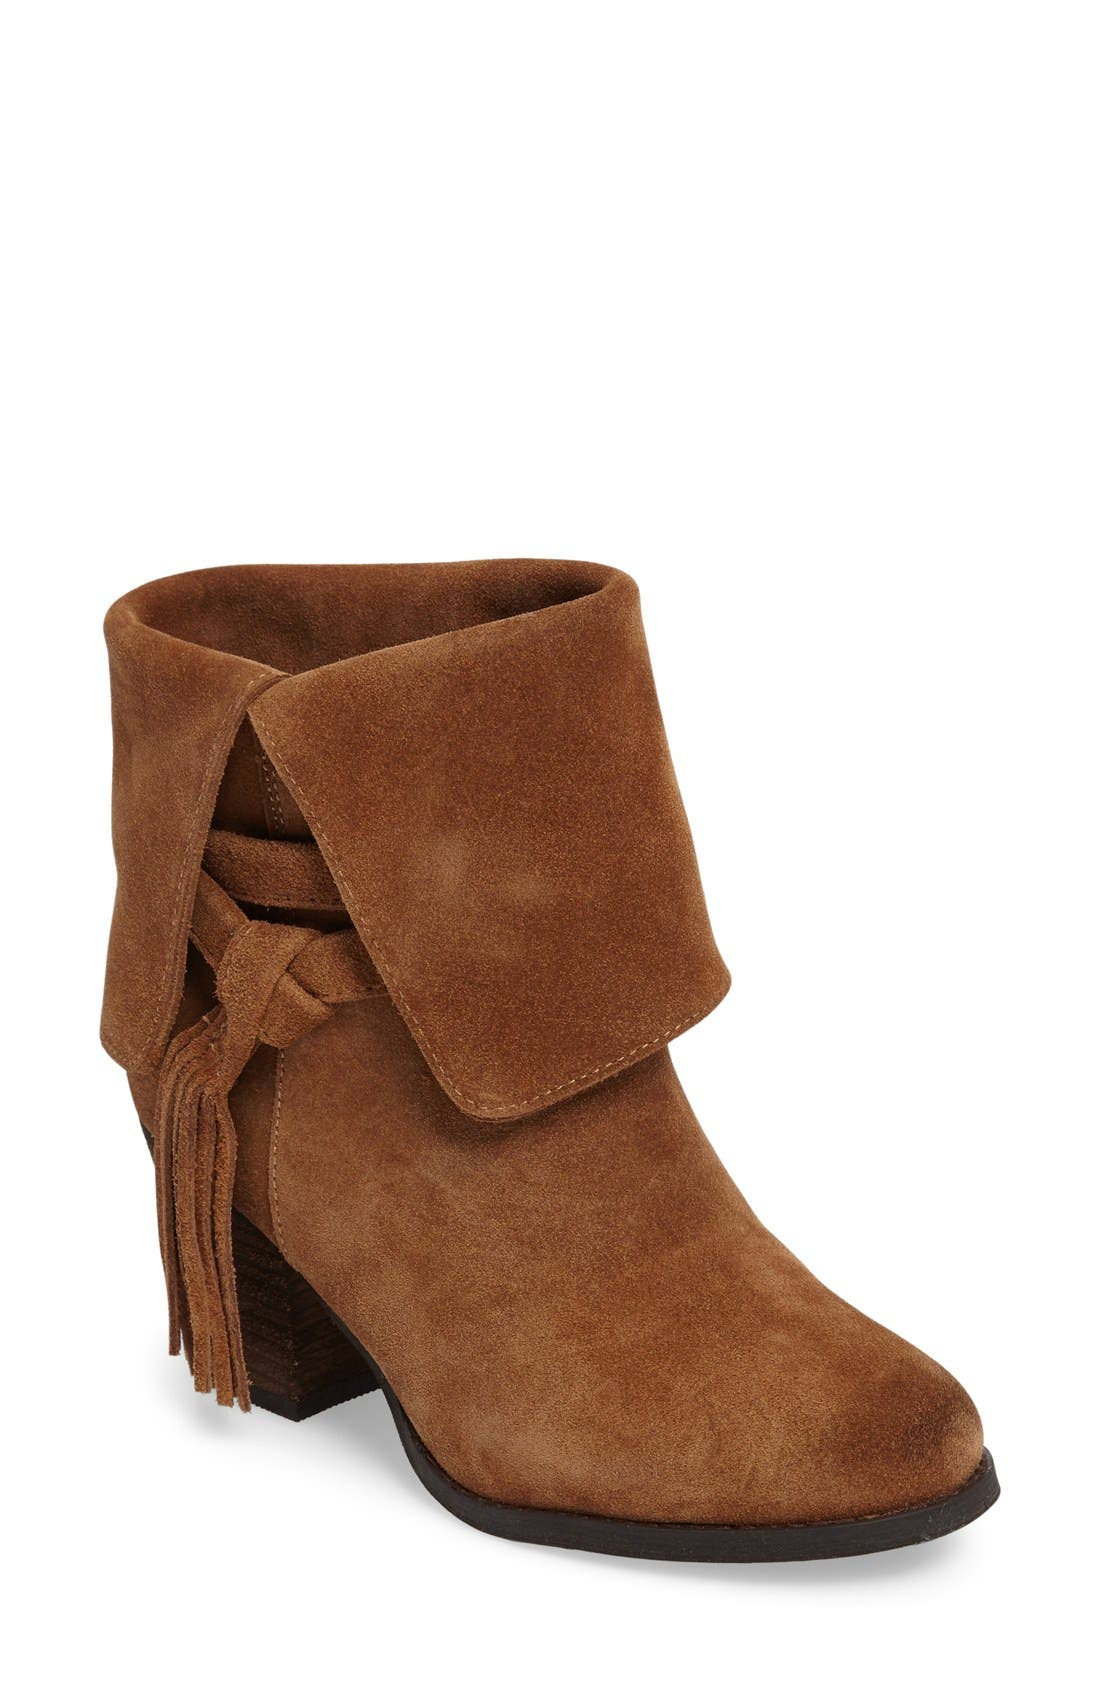 Main Image - Sbicca Cairenn Cuffable Bootie (Women)